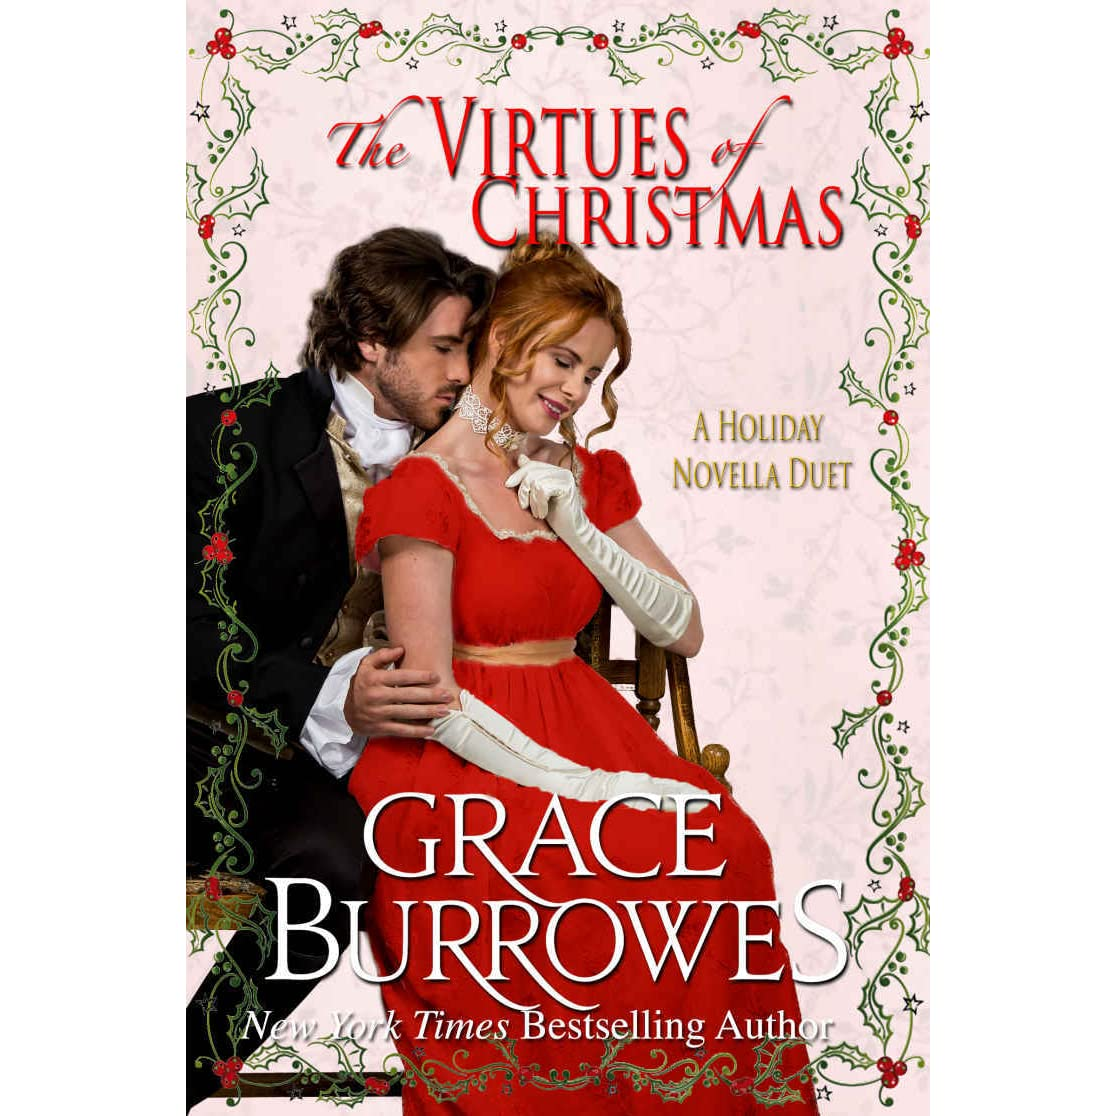 A Christmas For The Books.The Virtues Of Christmas By Grace Burrowes